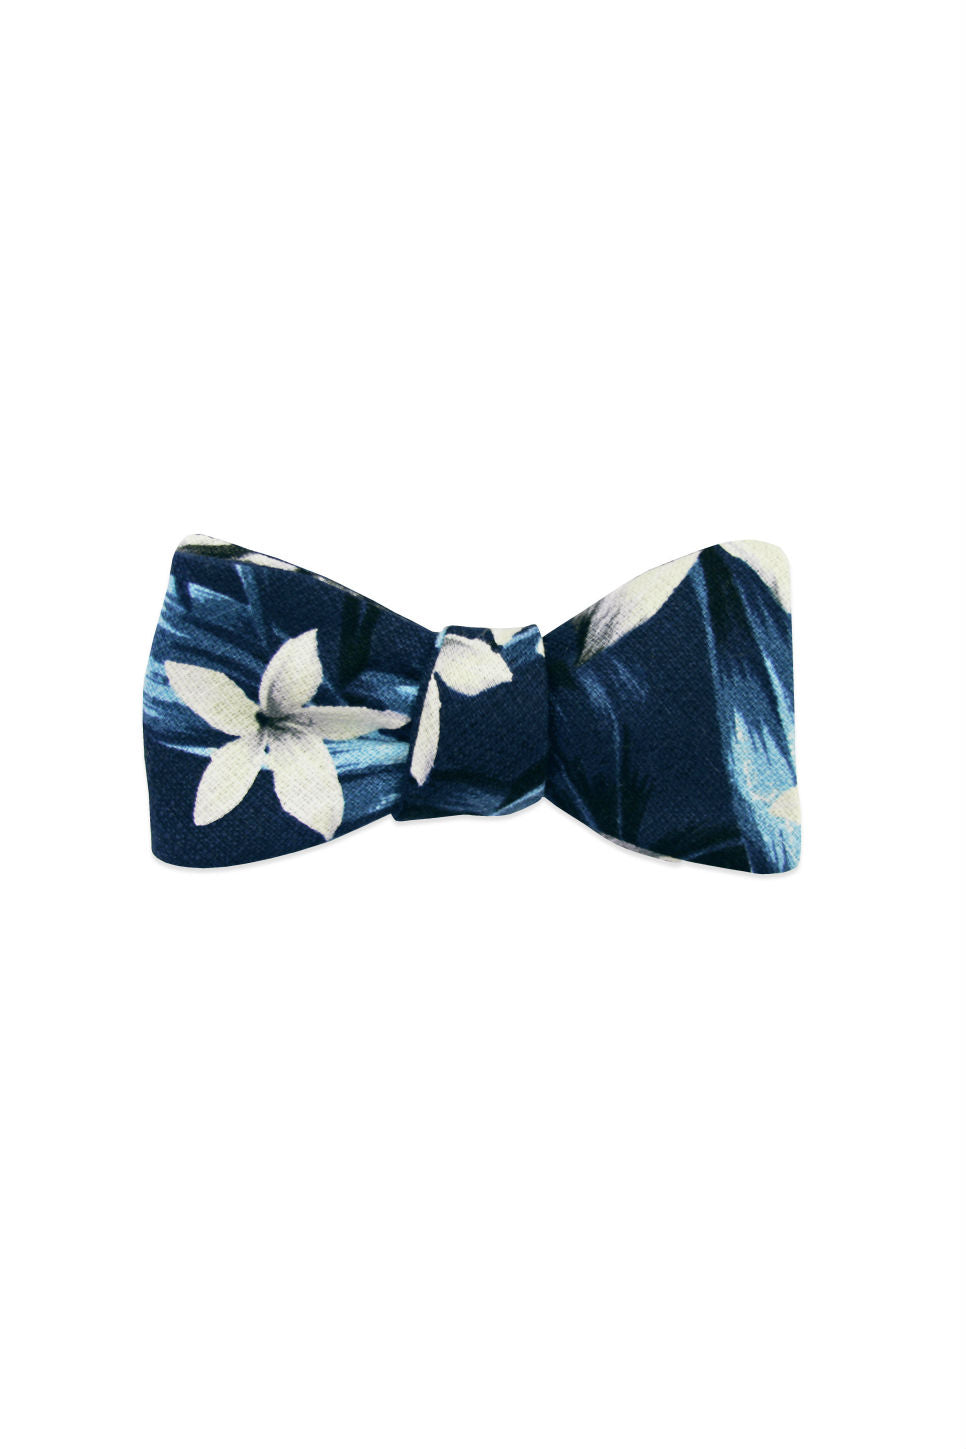 THE KALEA BOW TIE Blue Tropical